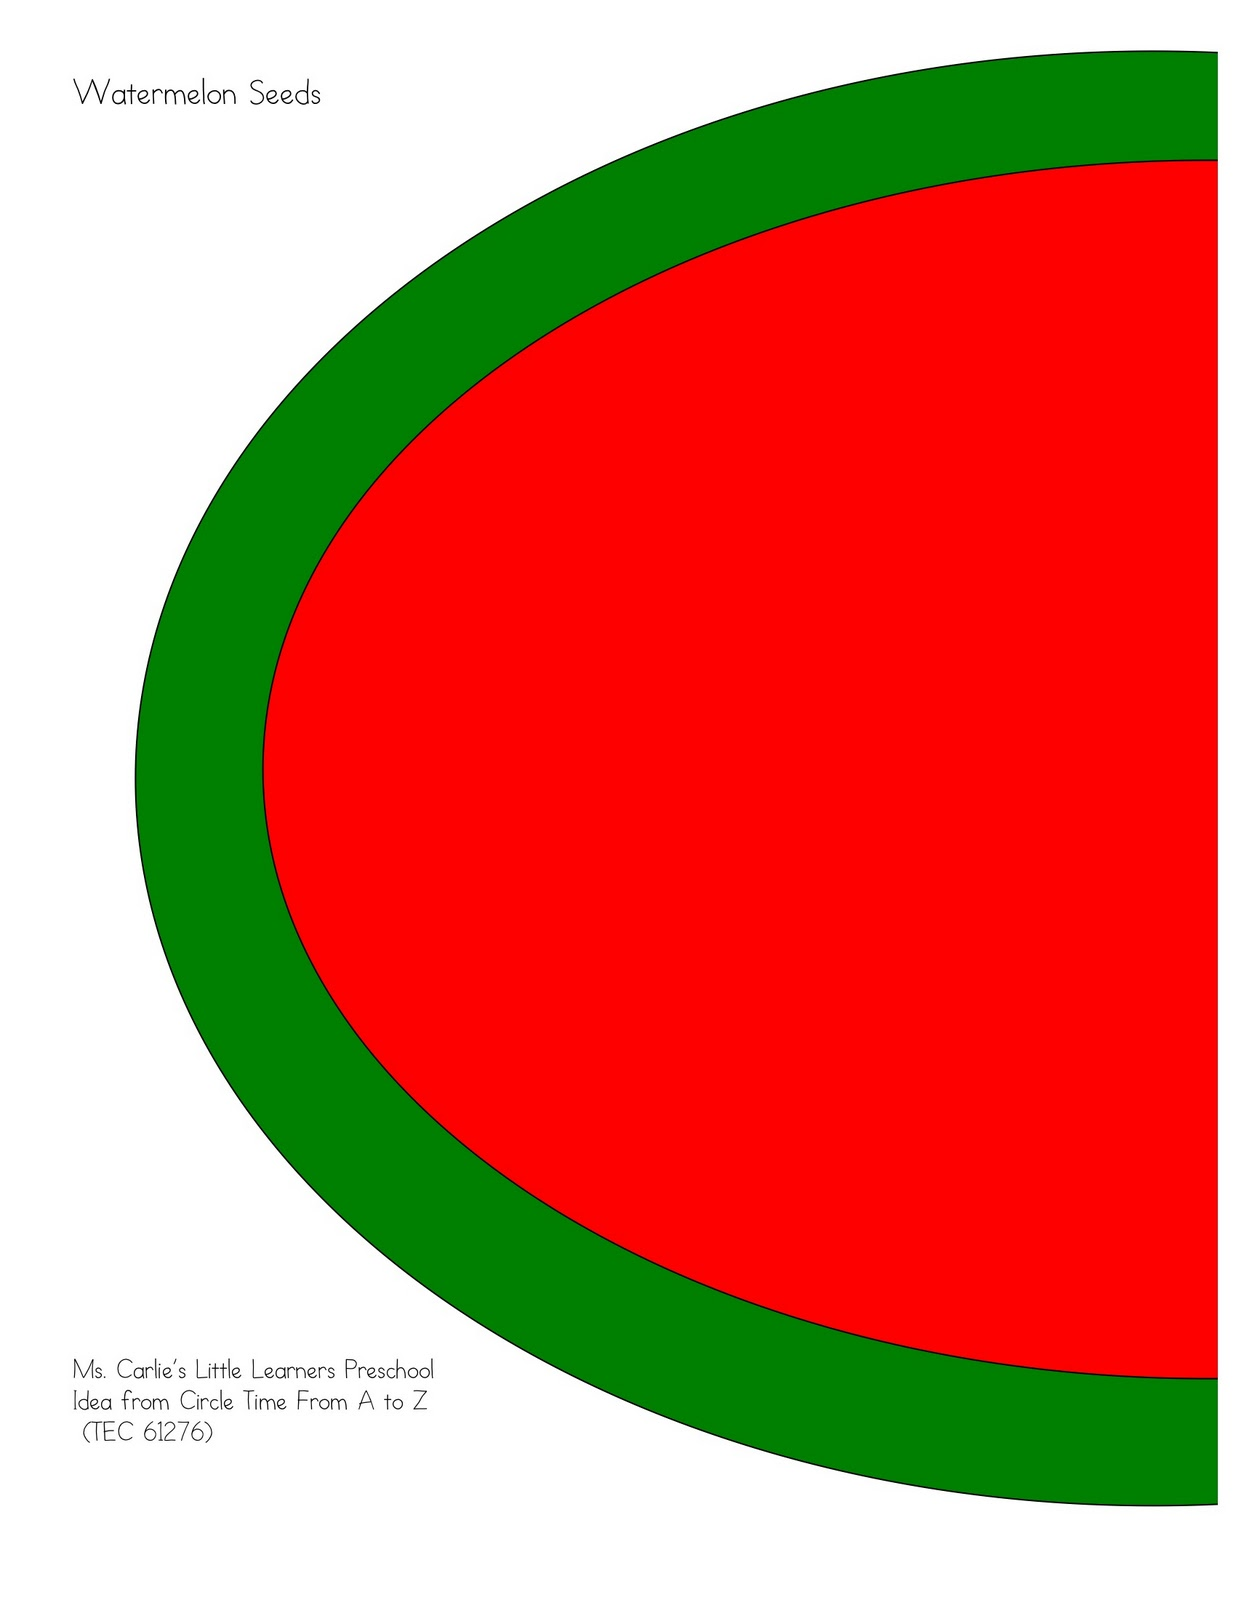 Clipart watermelon no seeds.